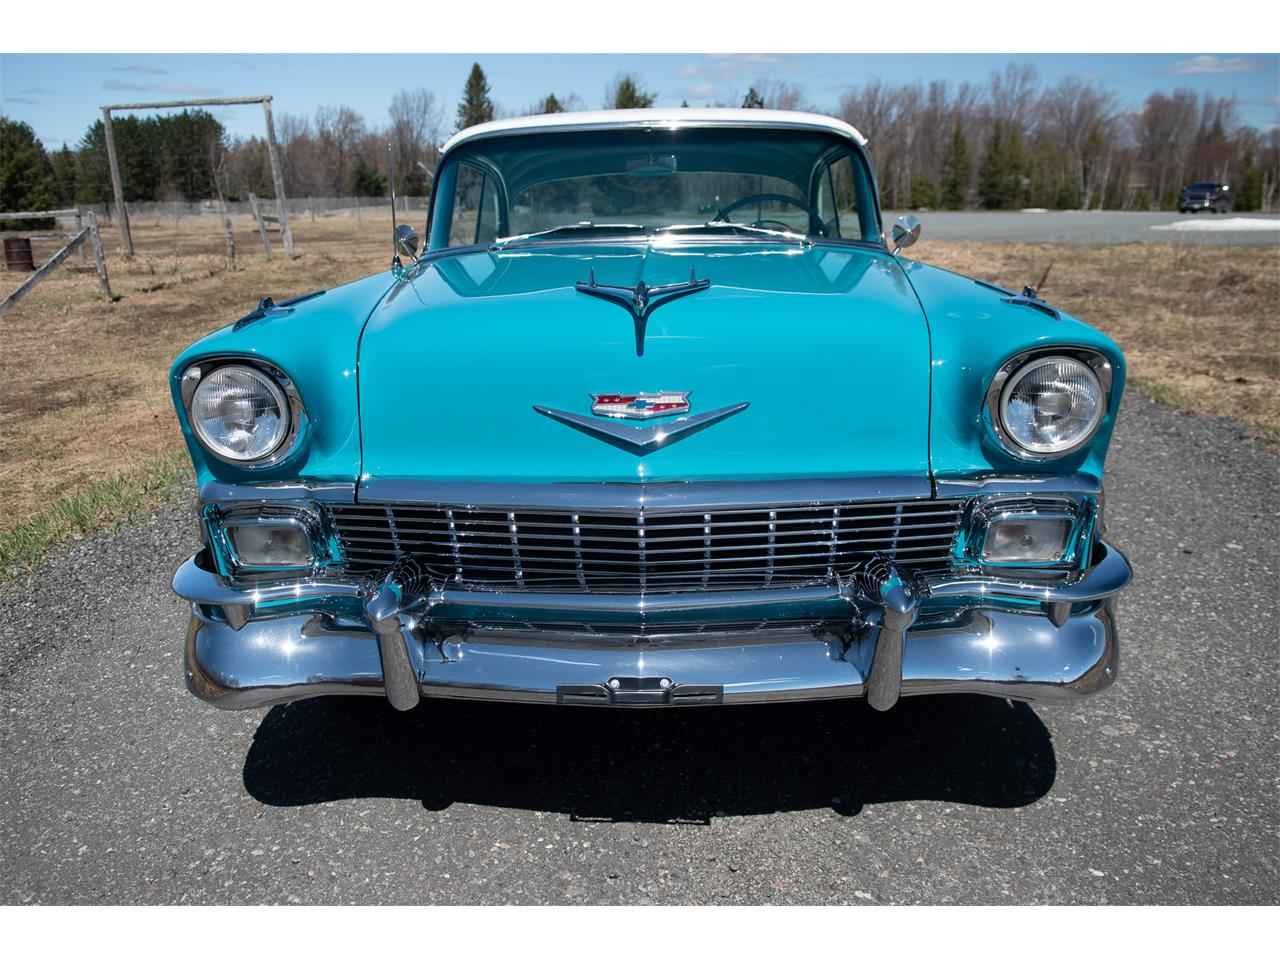 Large Picture of Classic '56 Chevrolet Bel Air located in VAL CARON Ontario - $69,500.00 Offered by R & R Classic Cars - Q1QB